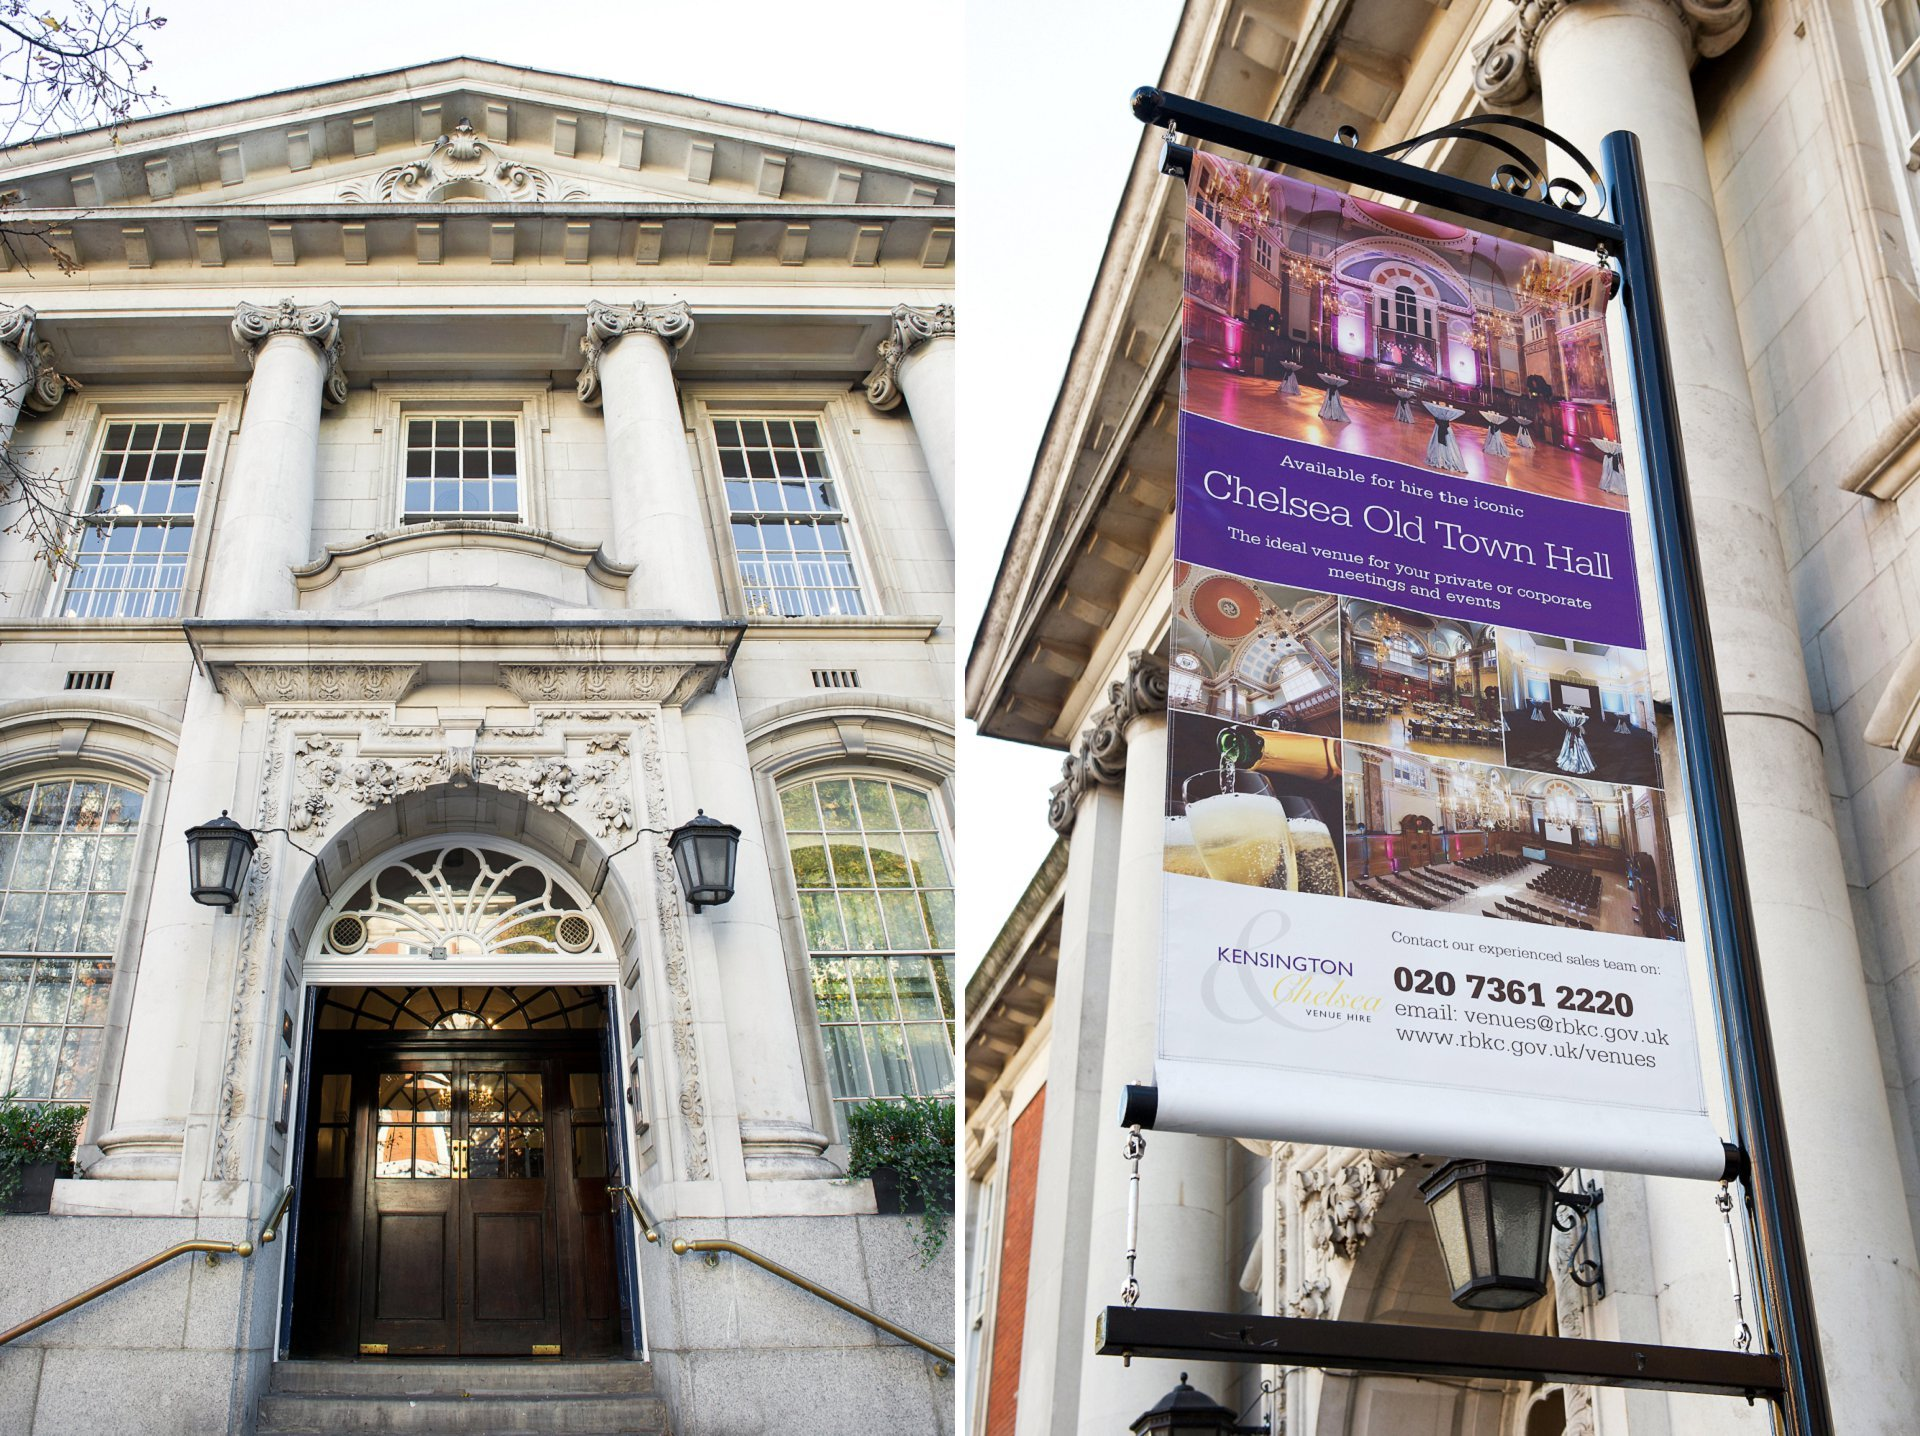 chelsea old town hall is a luxury chelsea wedding venue